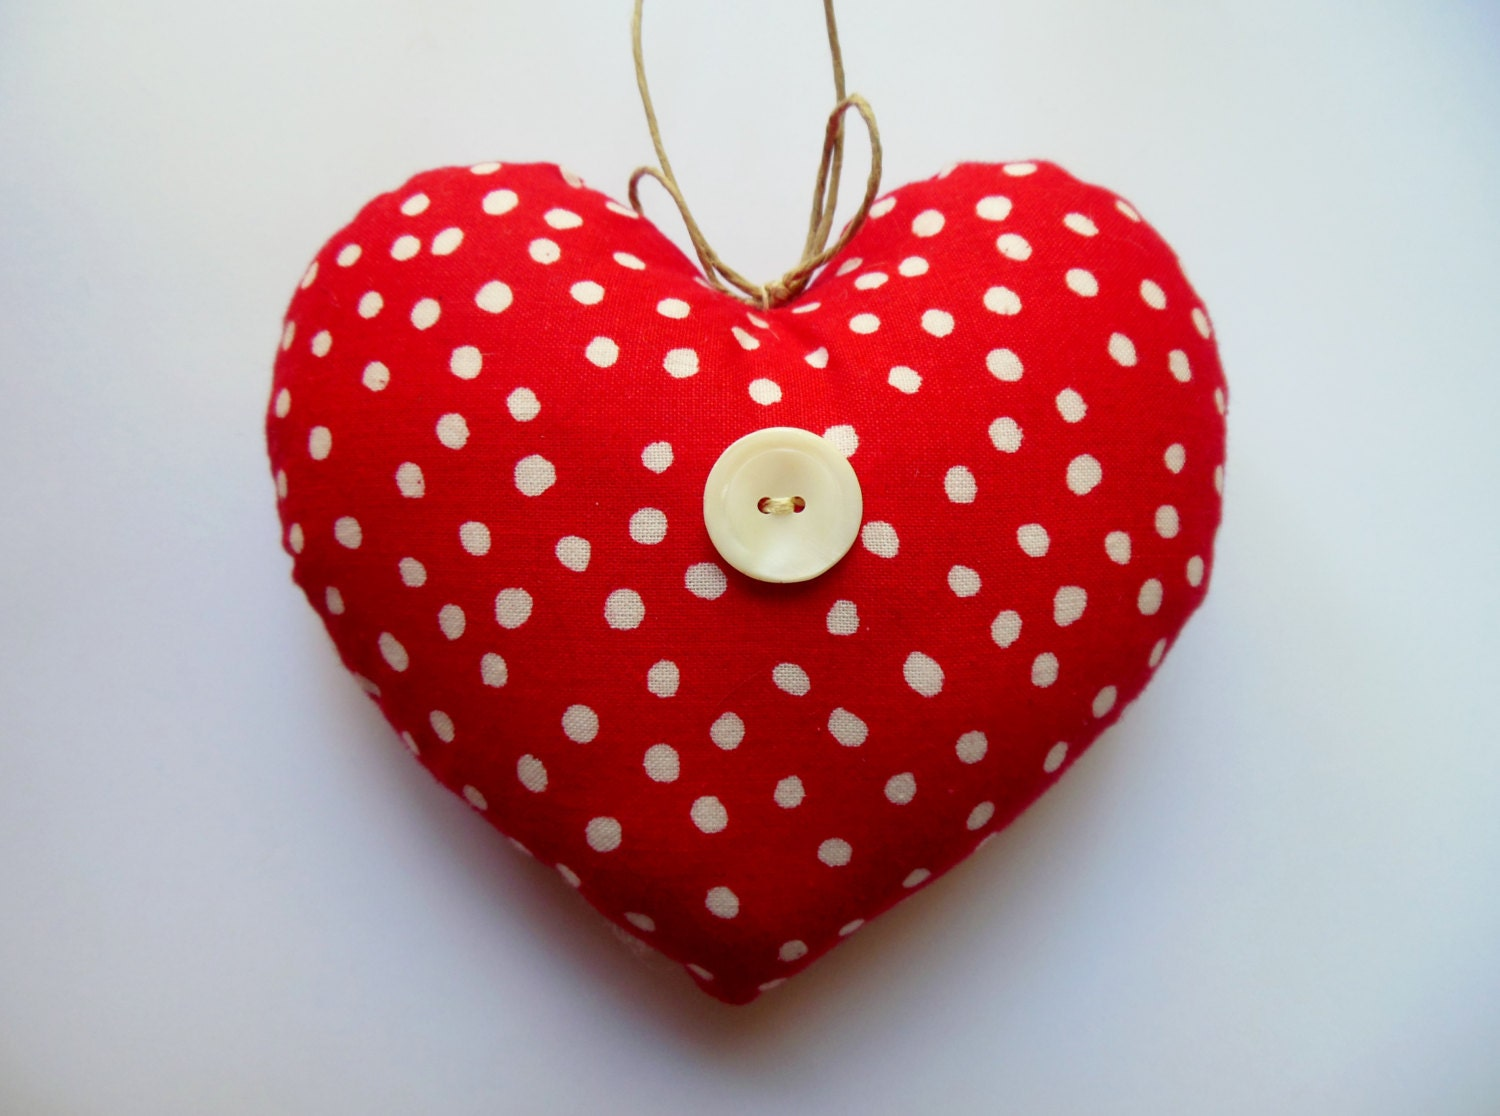 LITTLE PILLOW HEART Mini Heart Red And White Polka-dots